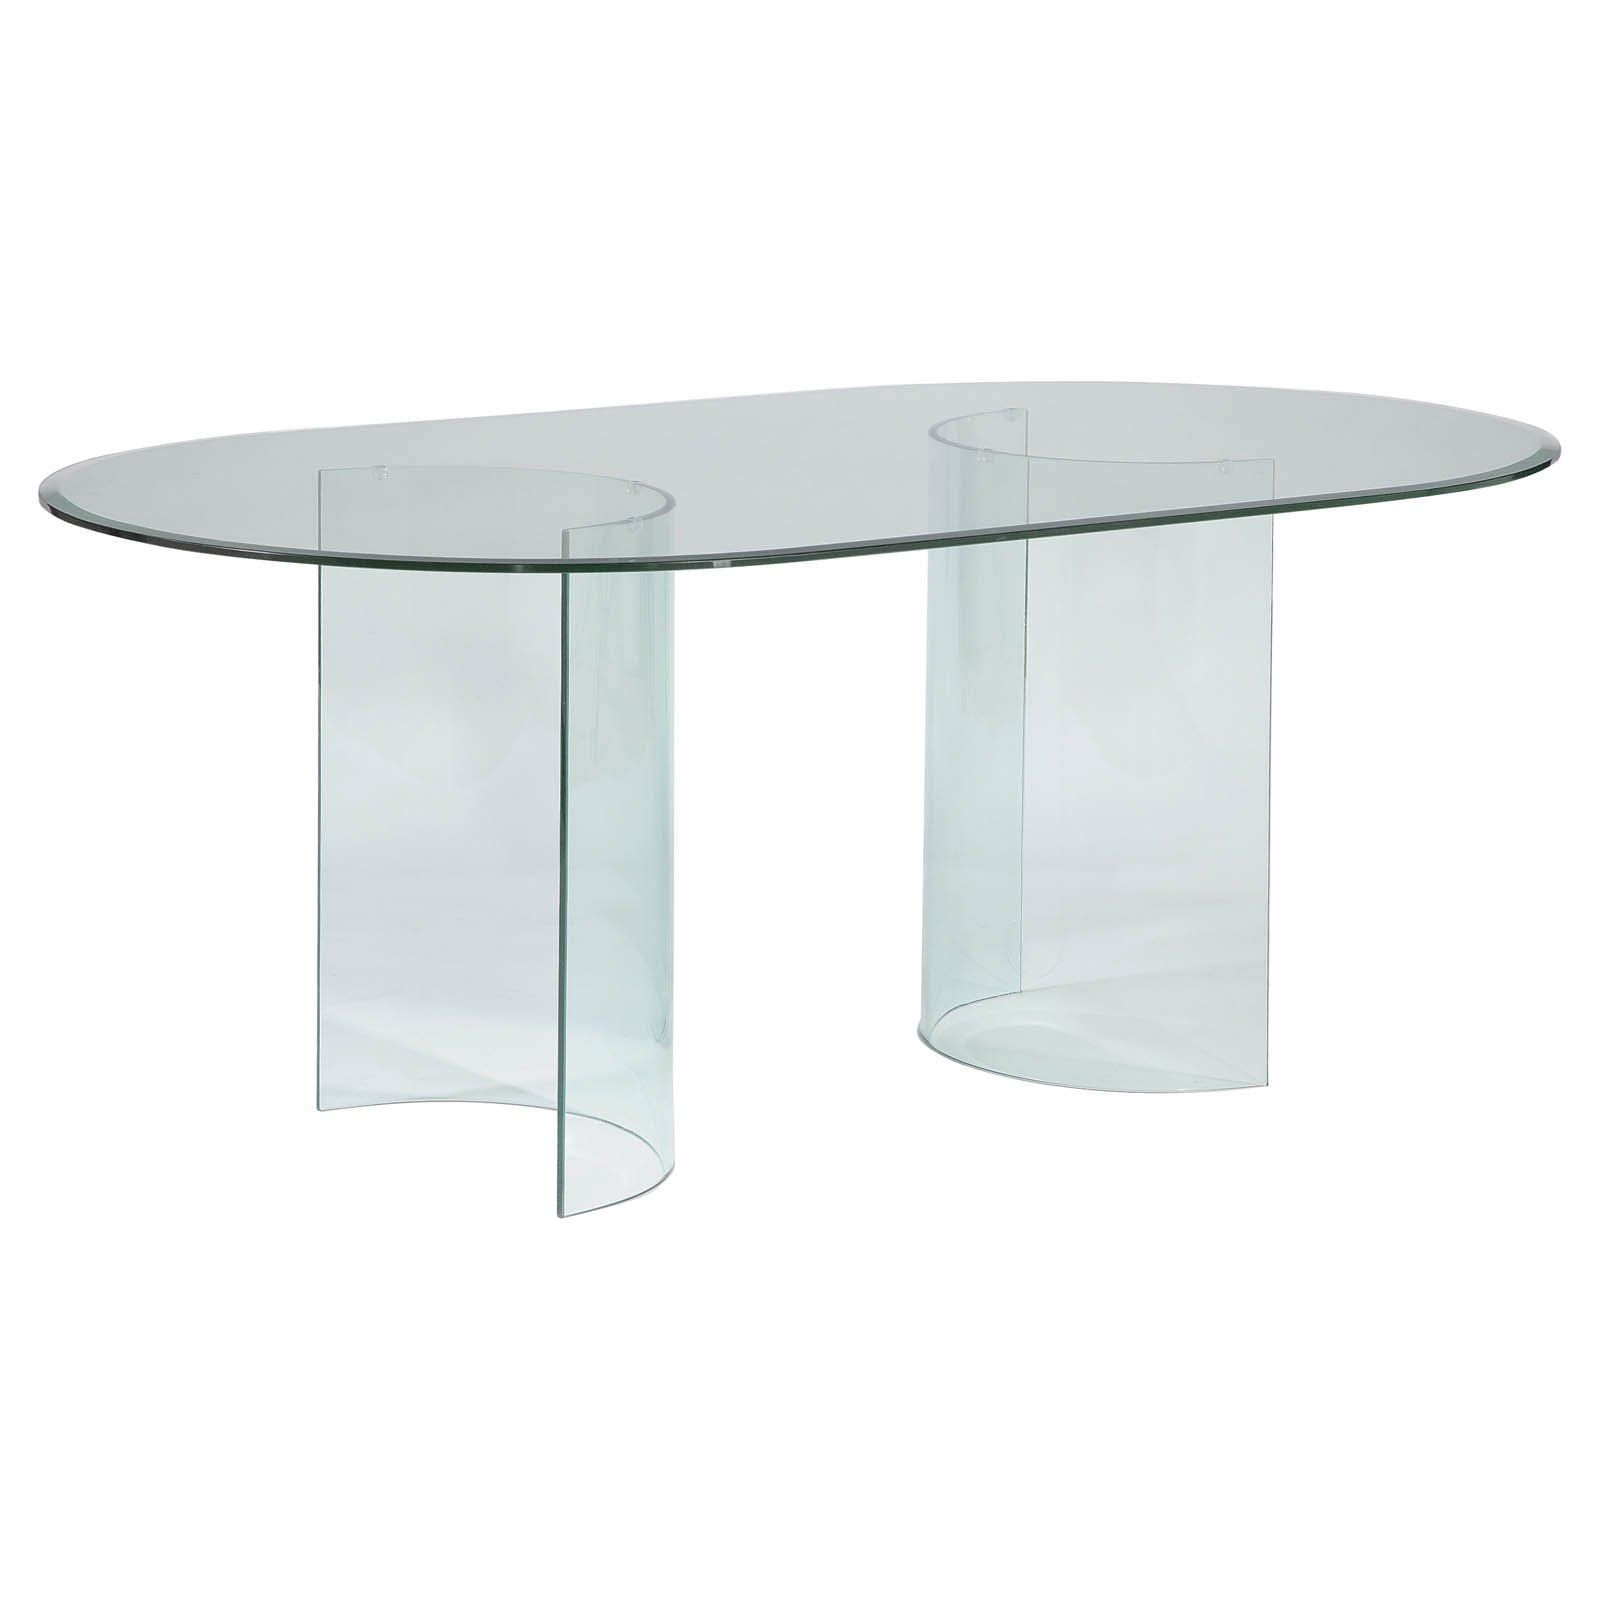 Have To Have It Chintaly Carmel Oval Dining Table With Glass Top